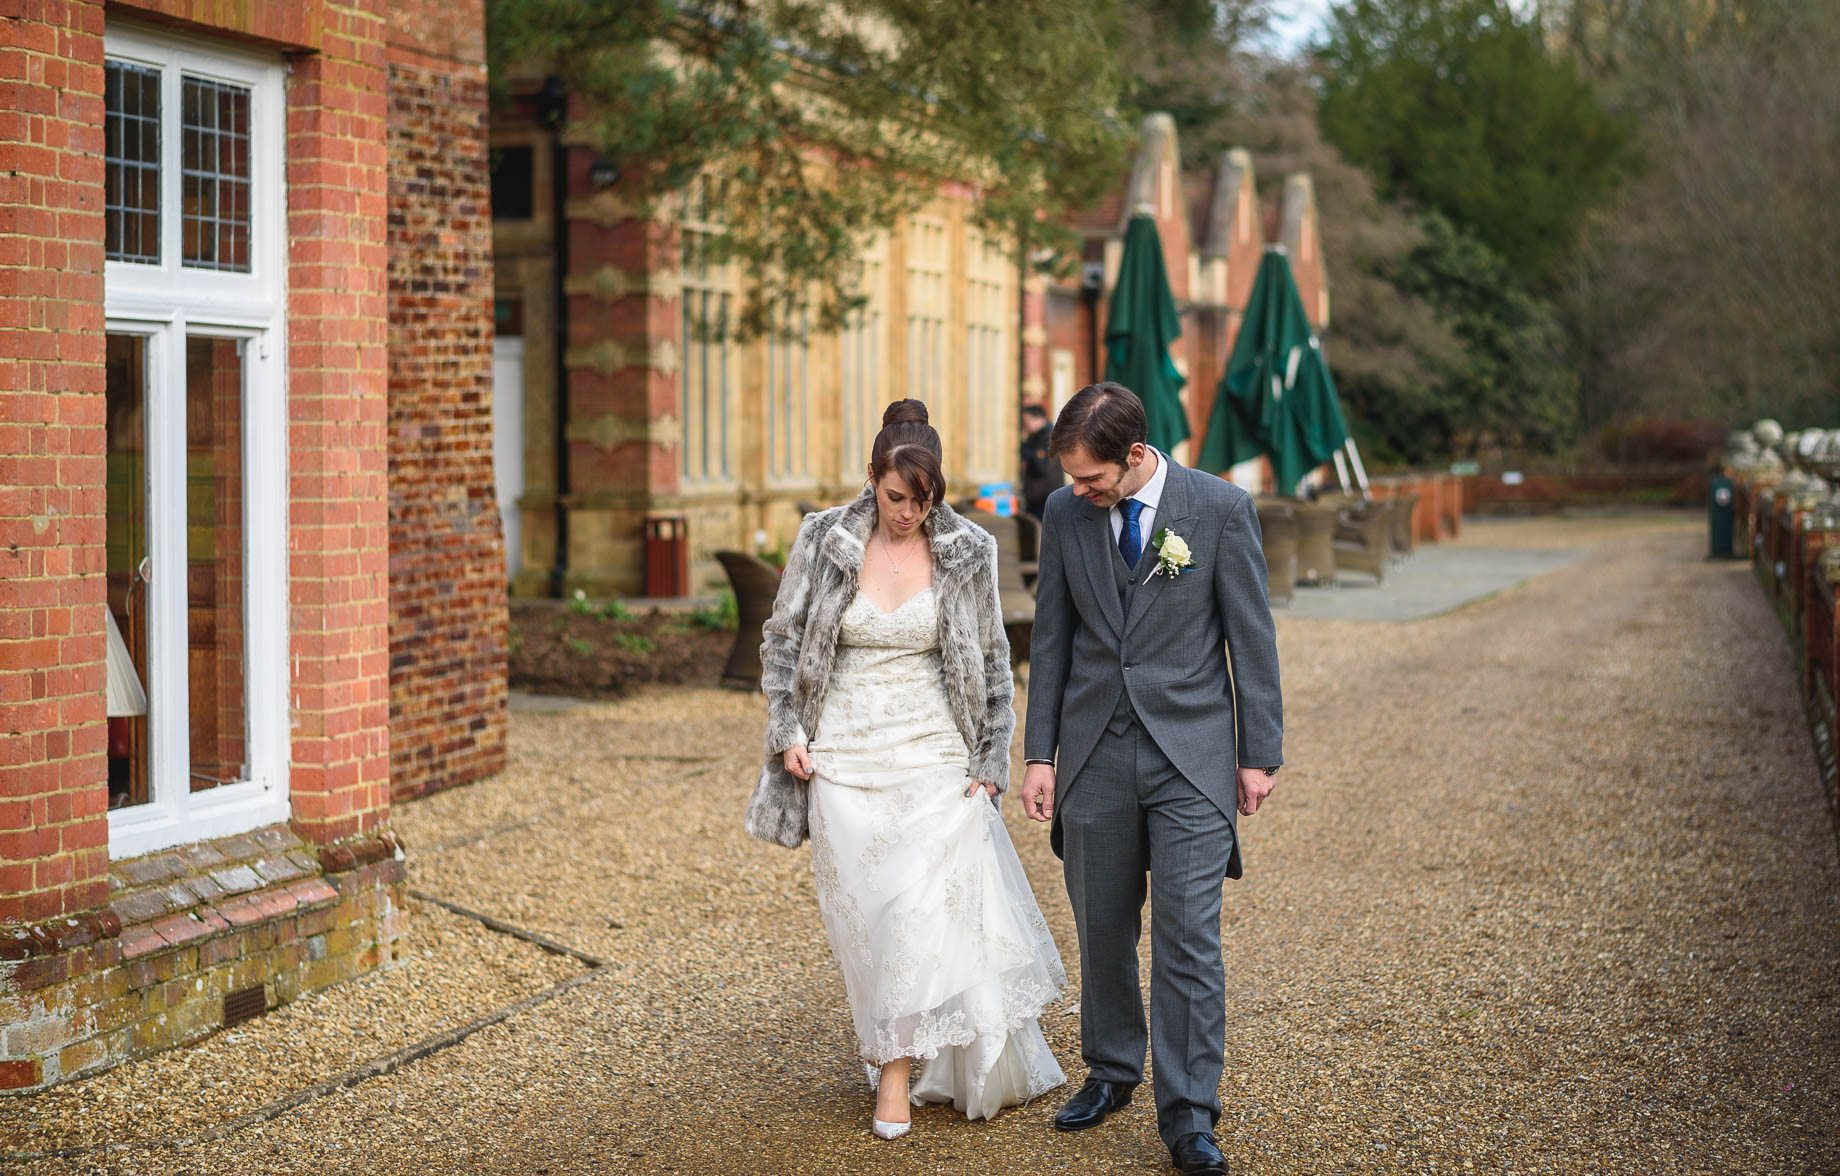 Surrey Wedding Photography - Emily and Pete by Guy Collier Photography (84 of 171)